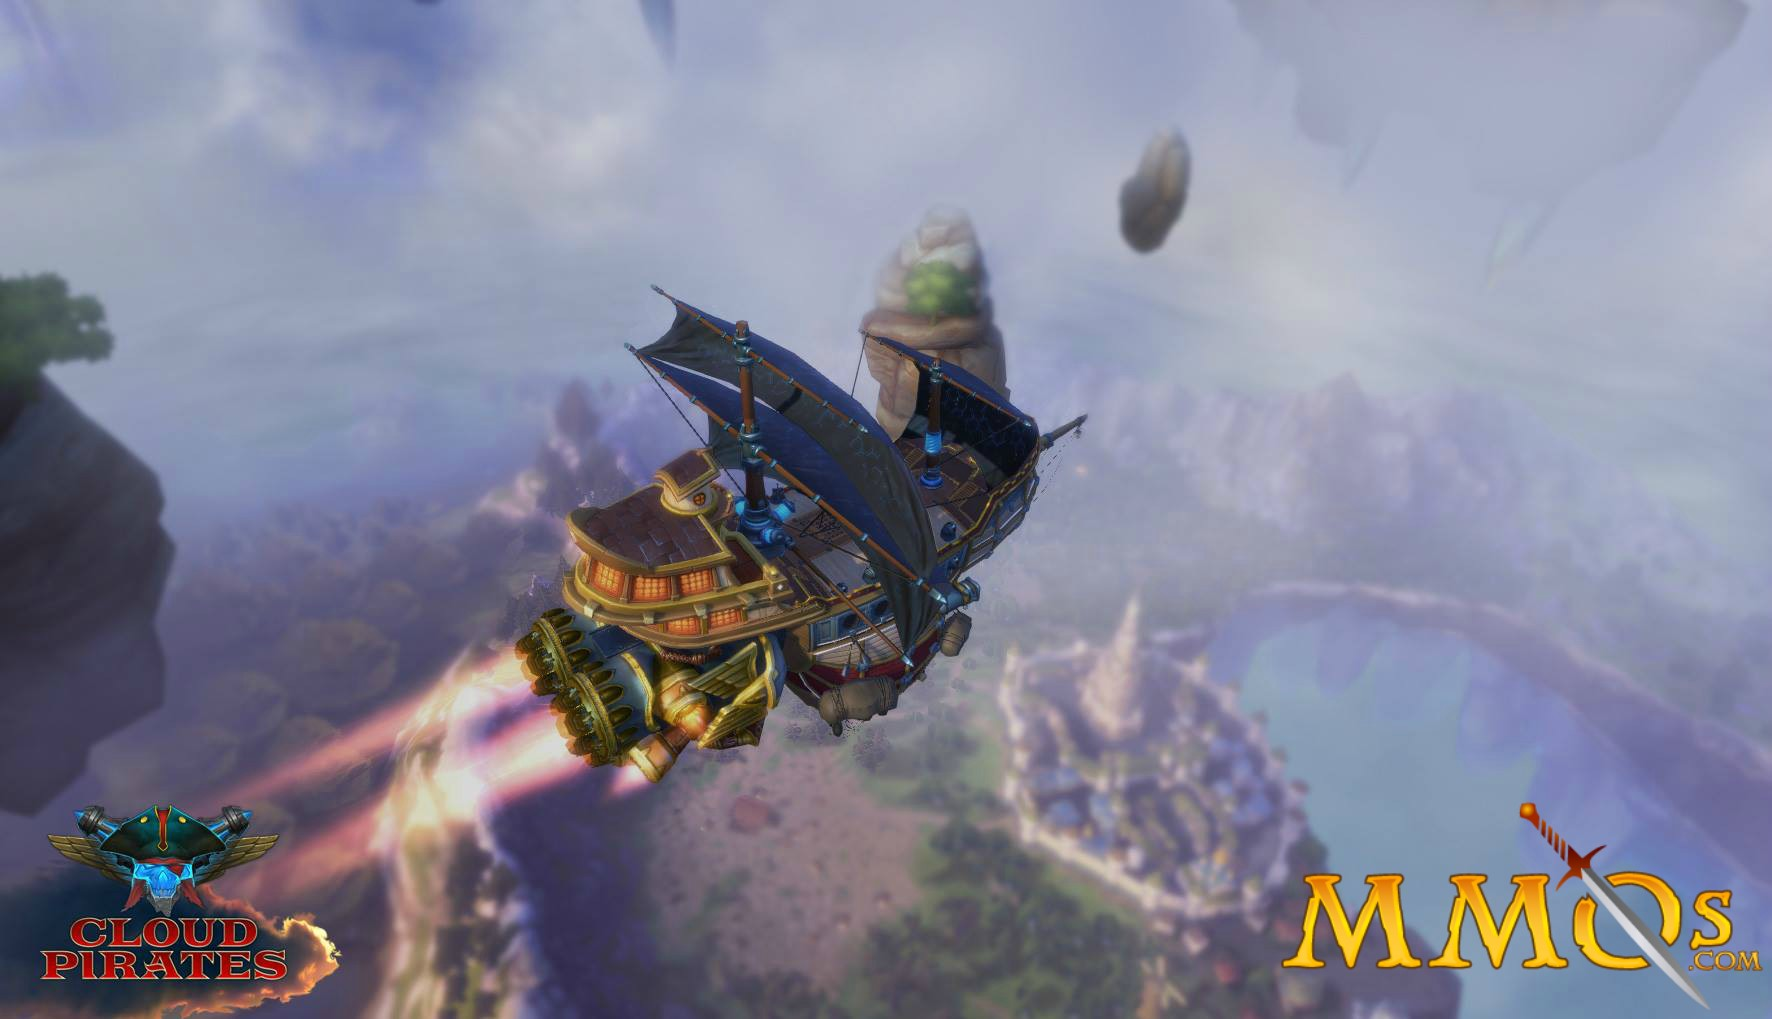 Cloud Pirates Access to Closed Beta Test (CBT)